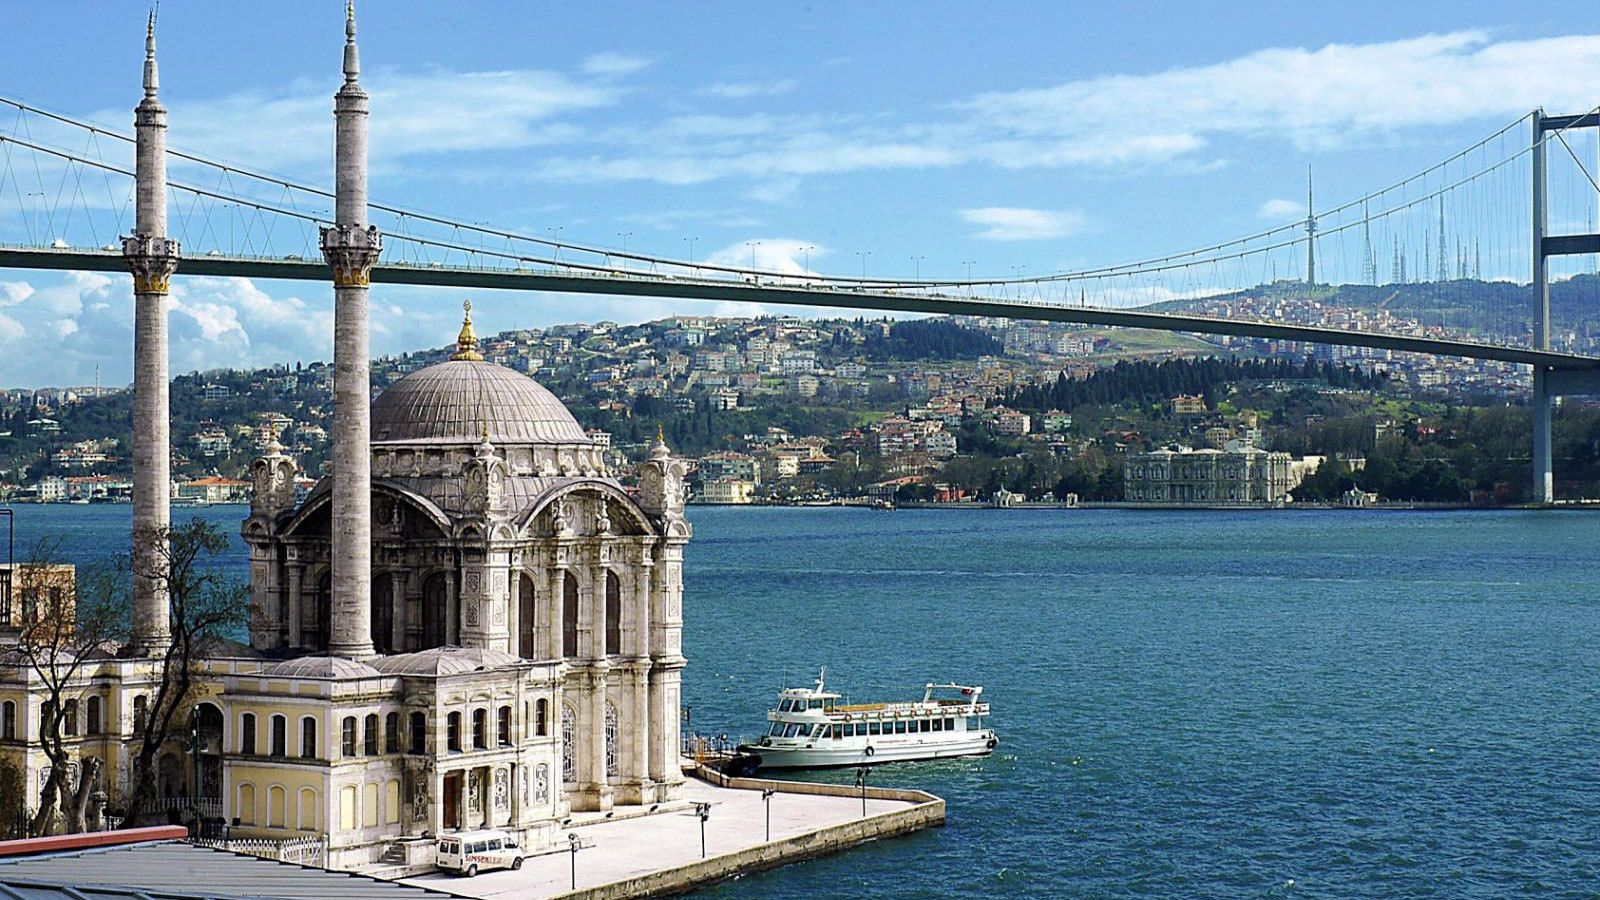 Day view of the Bosphorus Strait in Istanbul